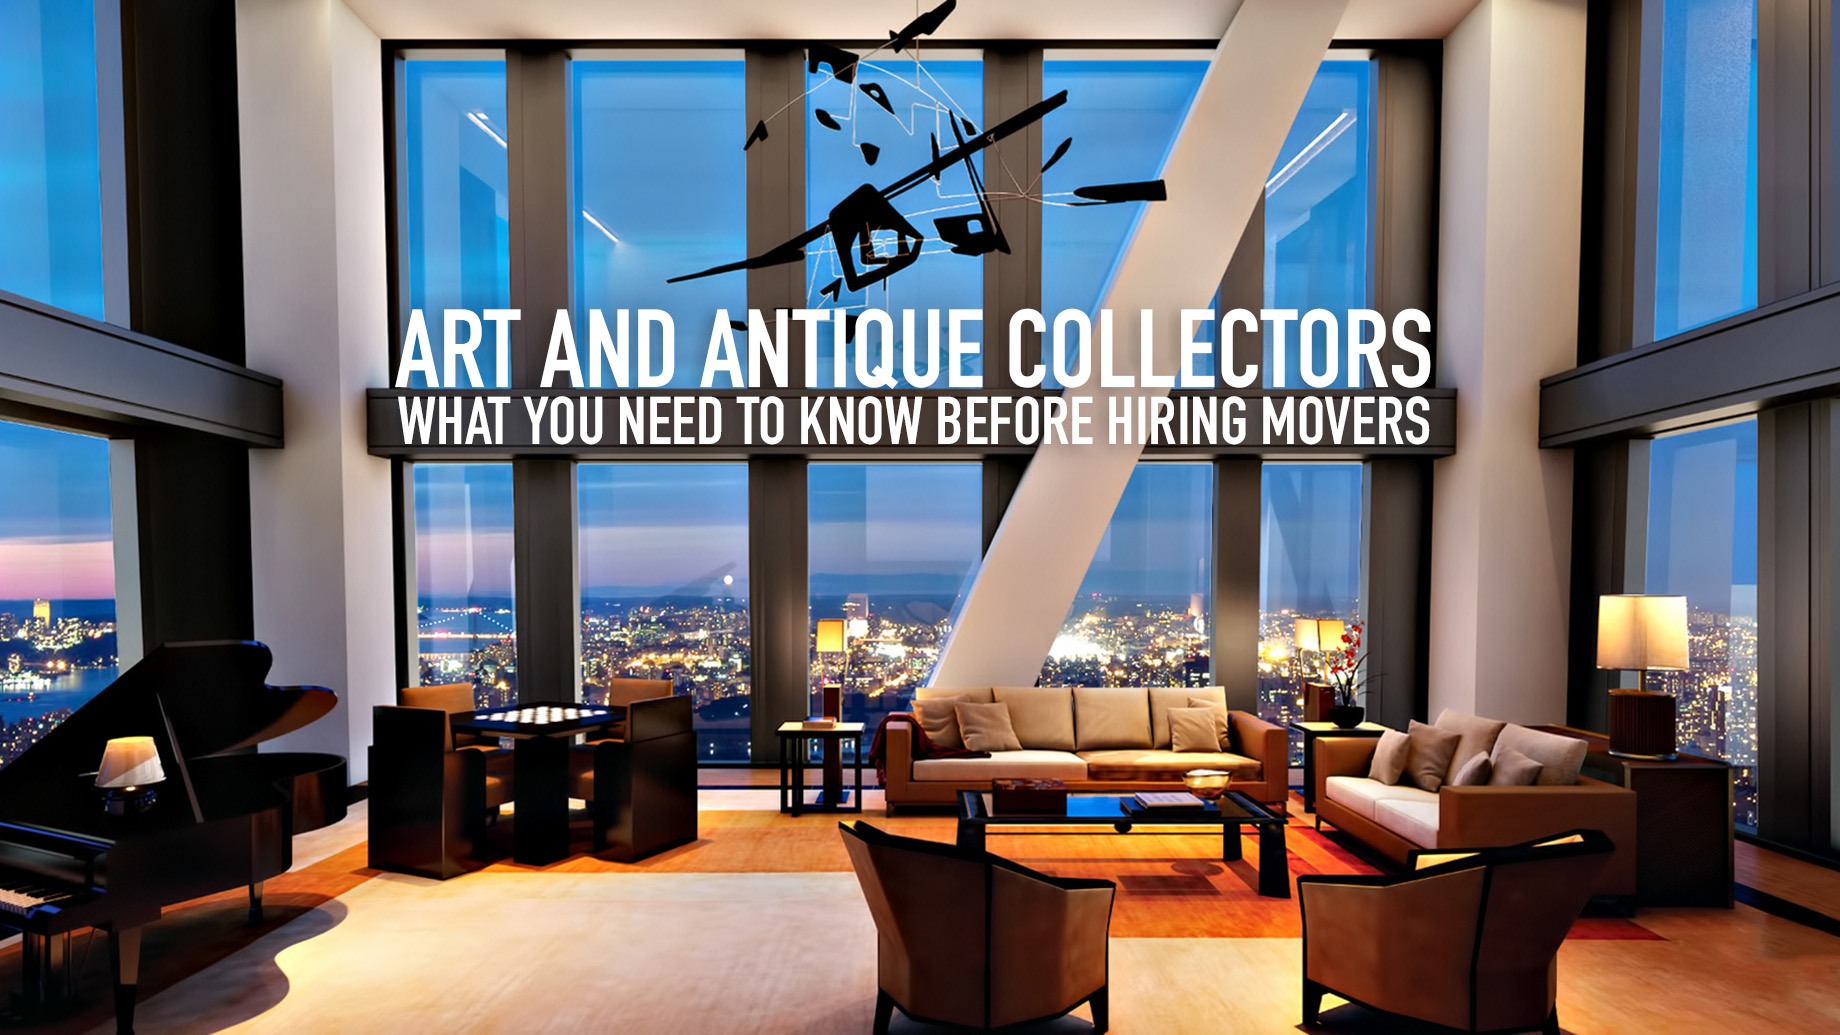 Art and Antique Collectors - What You Need to Know Before Hiring Movers